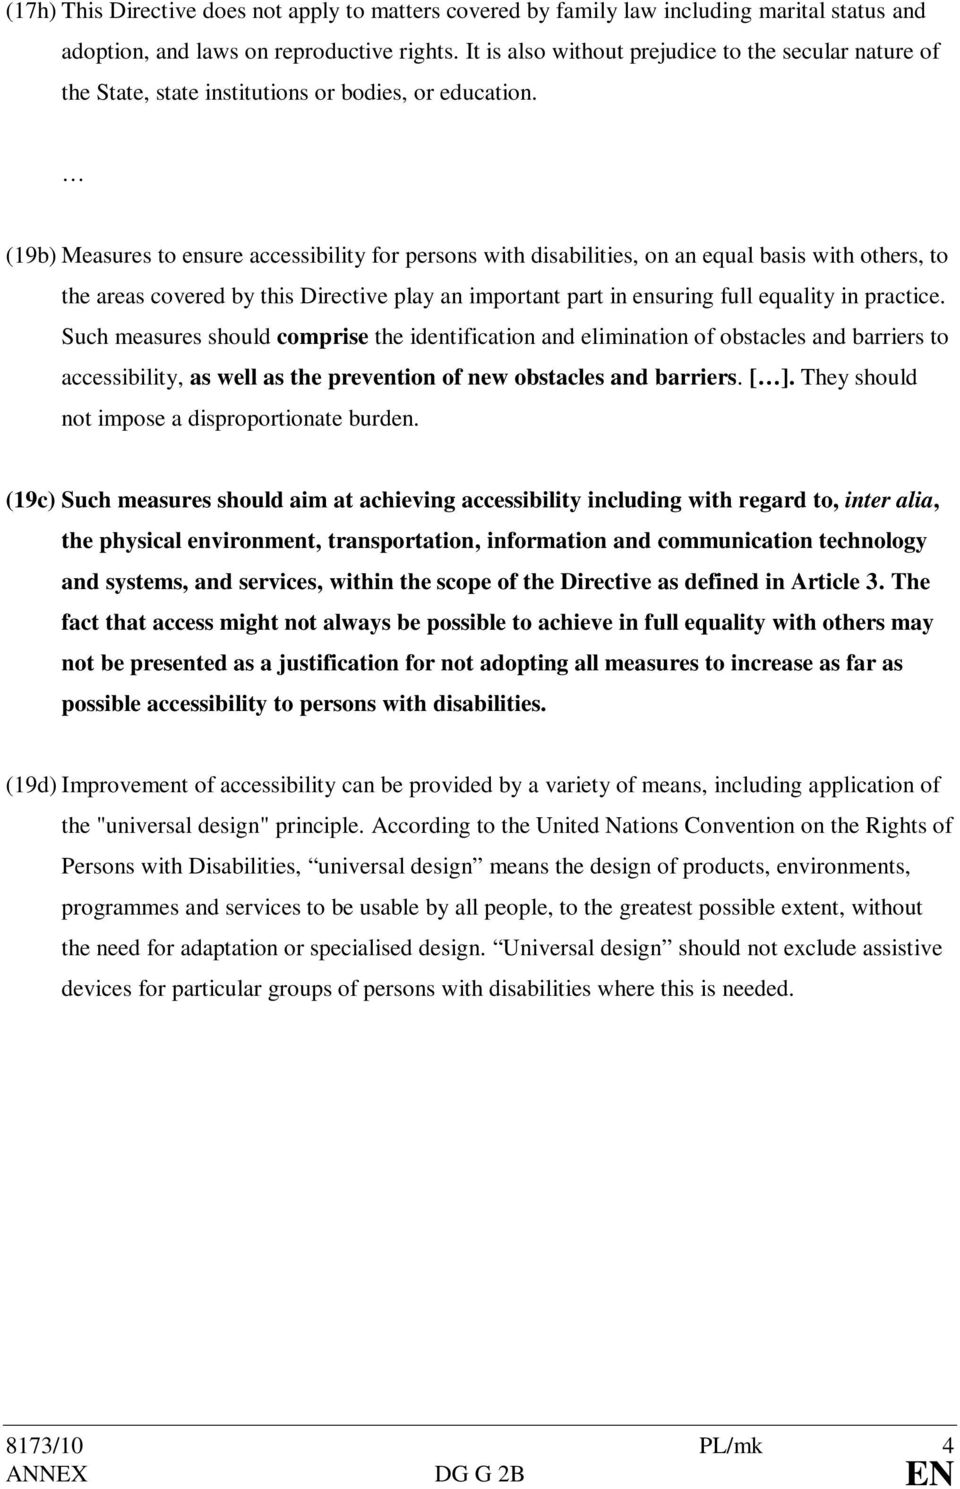 (19b) Measures to ensure accessibility for persons with disabilities, on an equal basis with others, to the areas covered by this Directive play an important part in ensuring full equality in